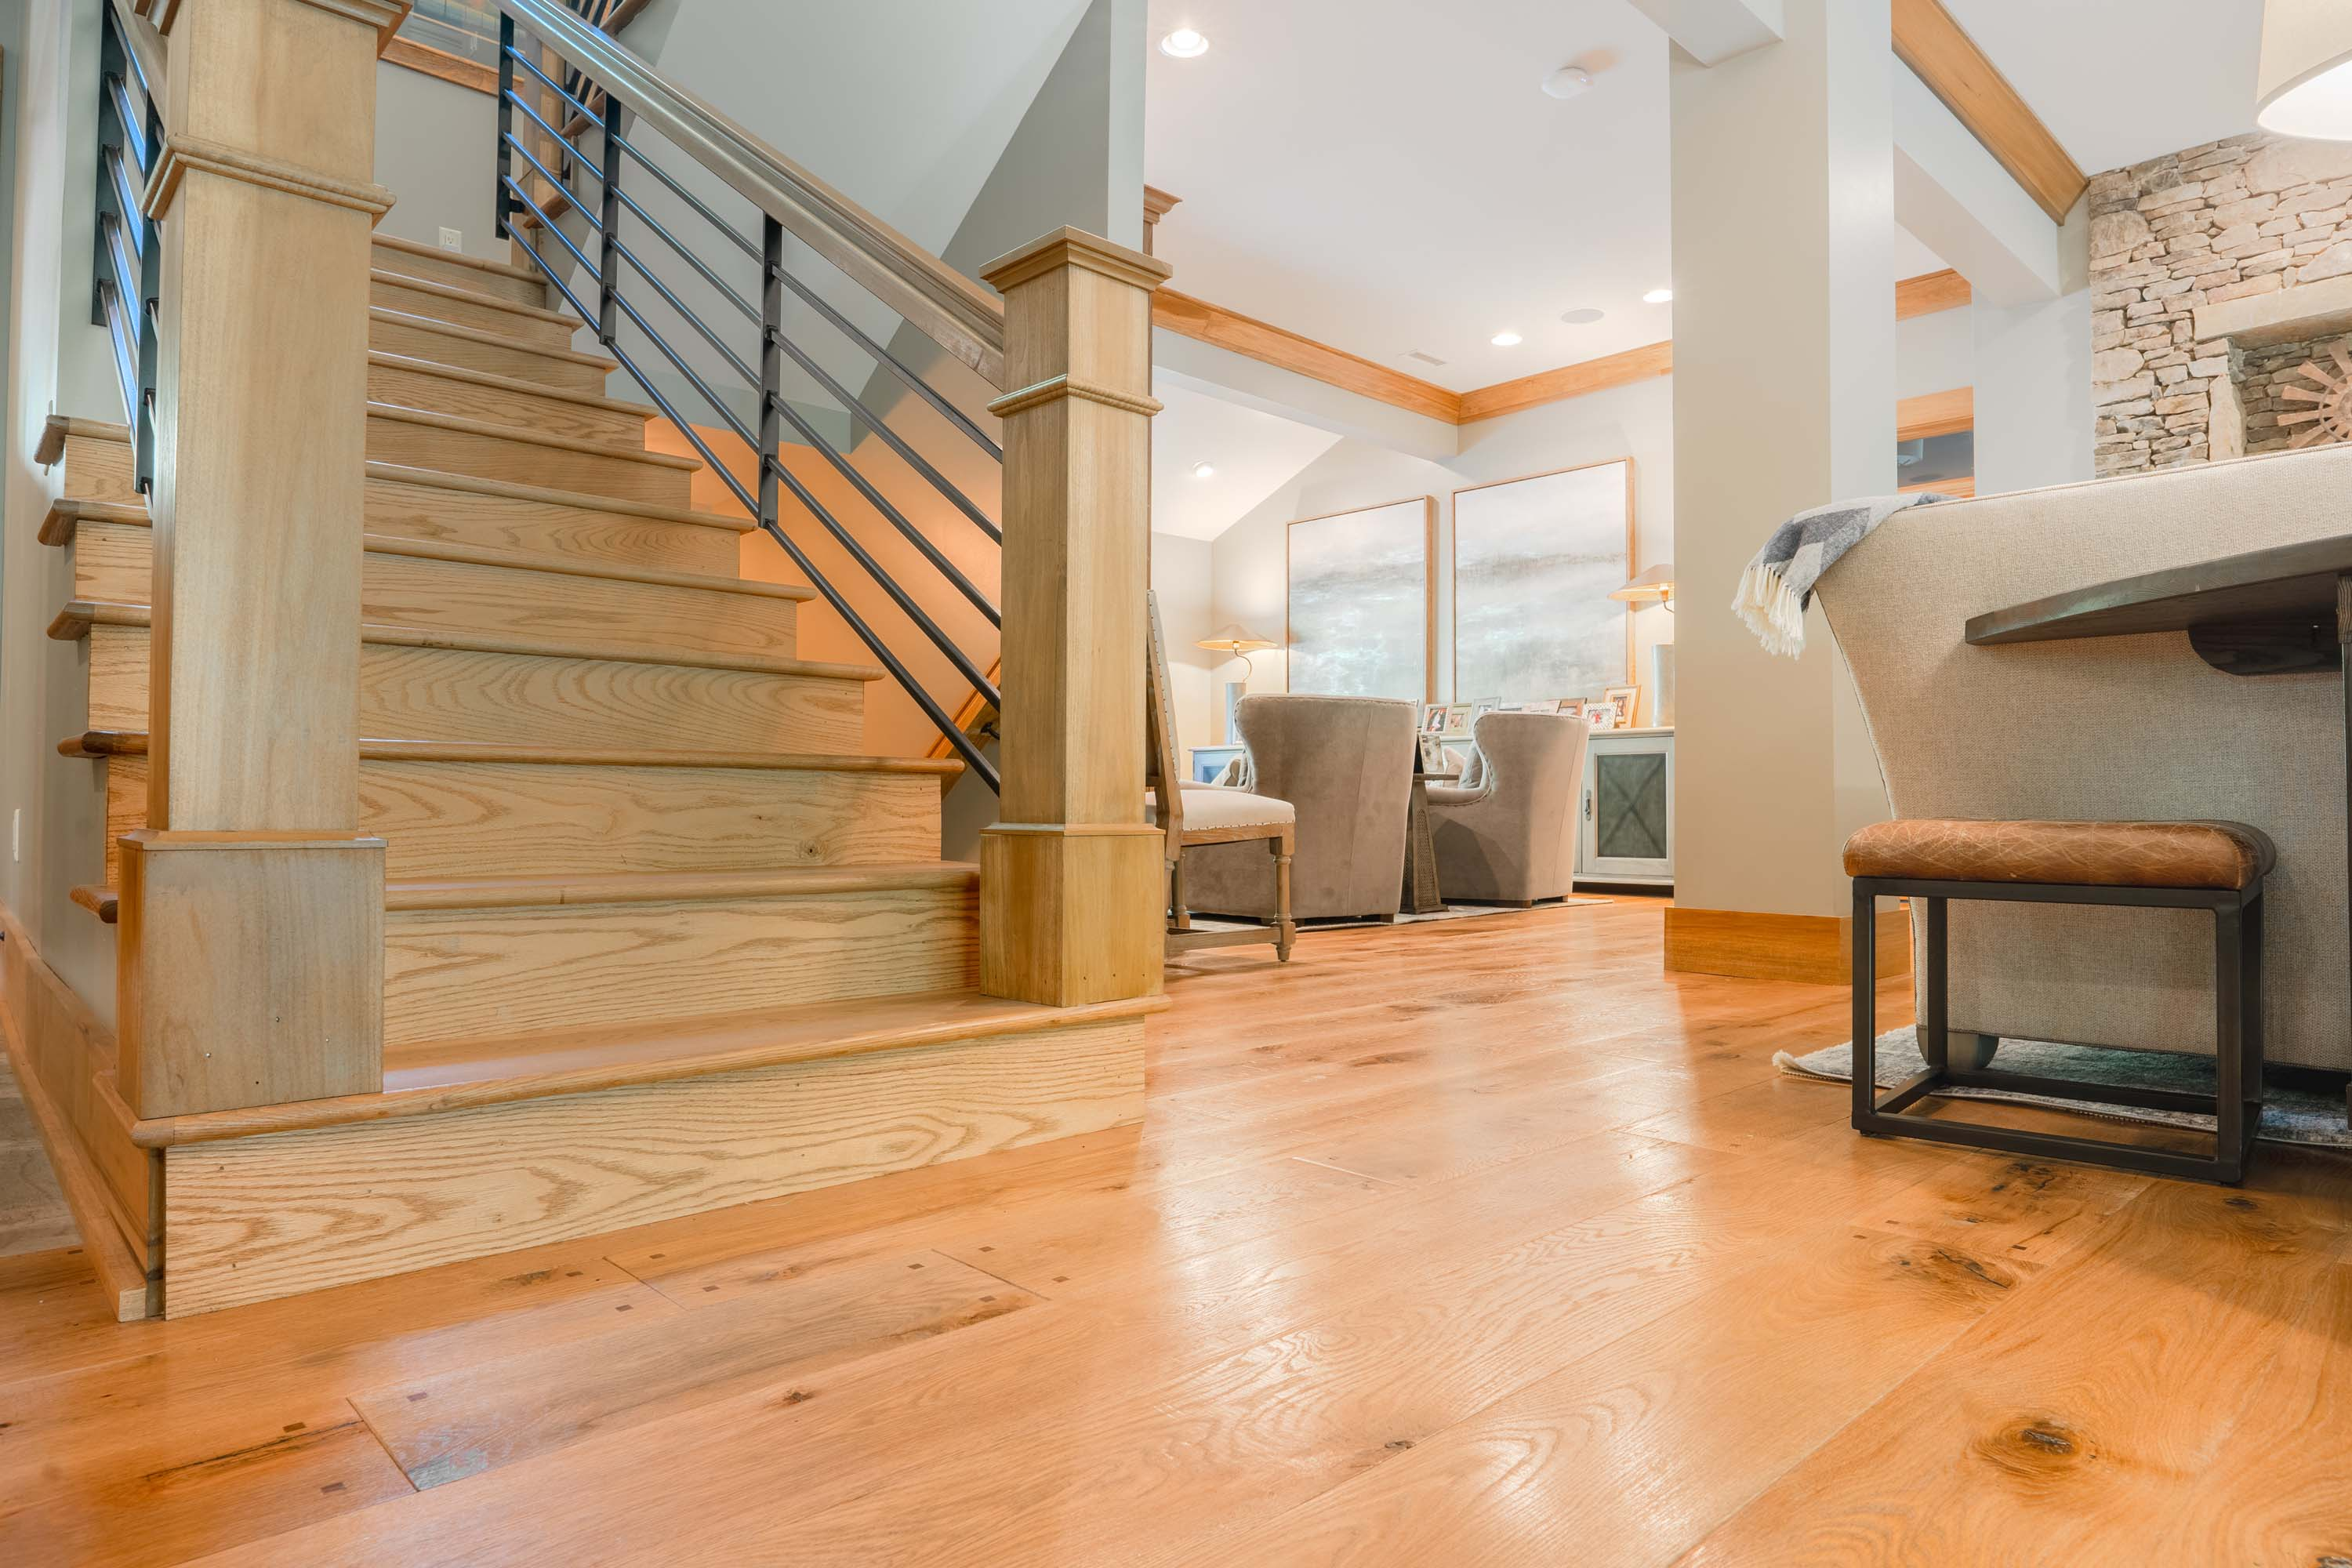 a staircase with Montana Plank Reclaimed Wood Flooring by Tennessee Wood Flooring. Our Reclaimed Wood Floors are gathered and made in the hills of sevierville, tennessee.